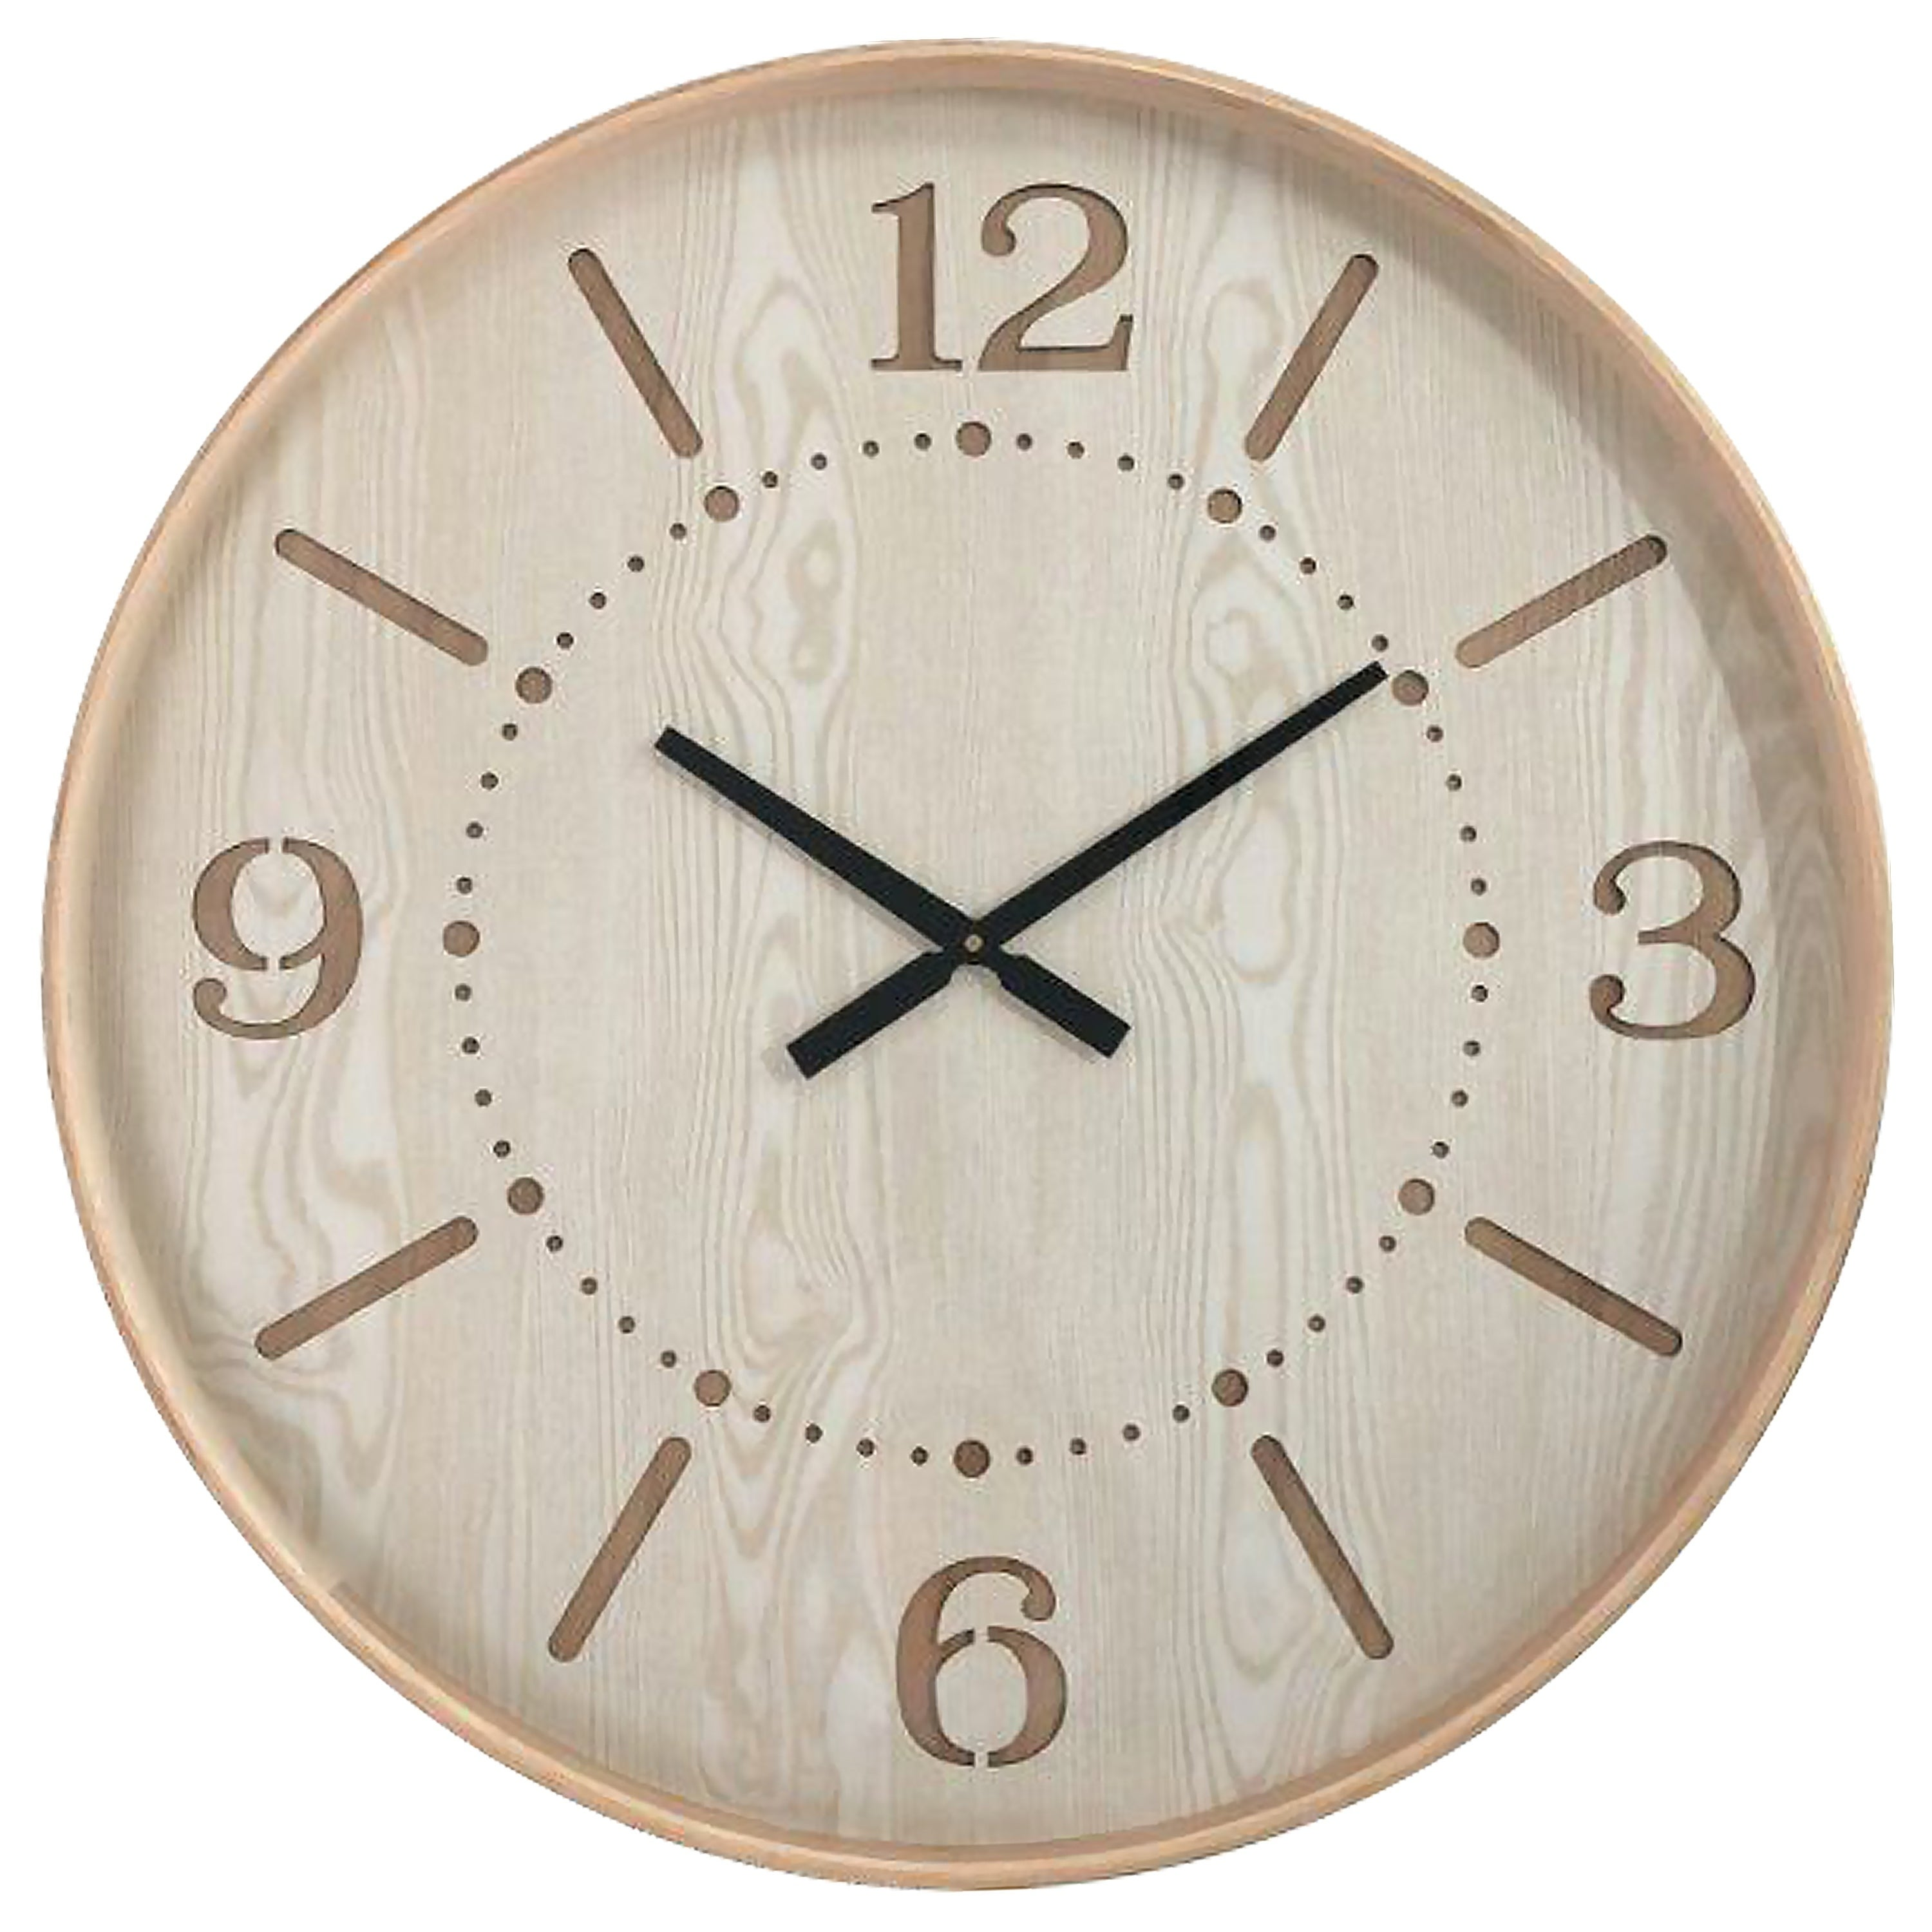 Shop yosemite home decor contemporary chic i wood wall clock on sale free shipping today overstock 26283637